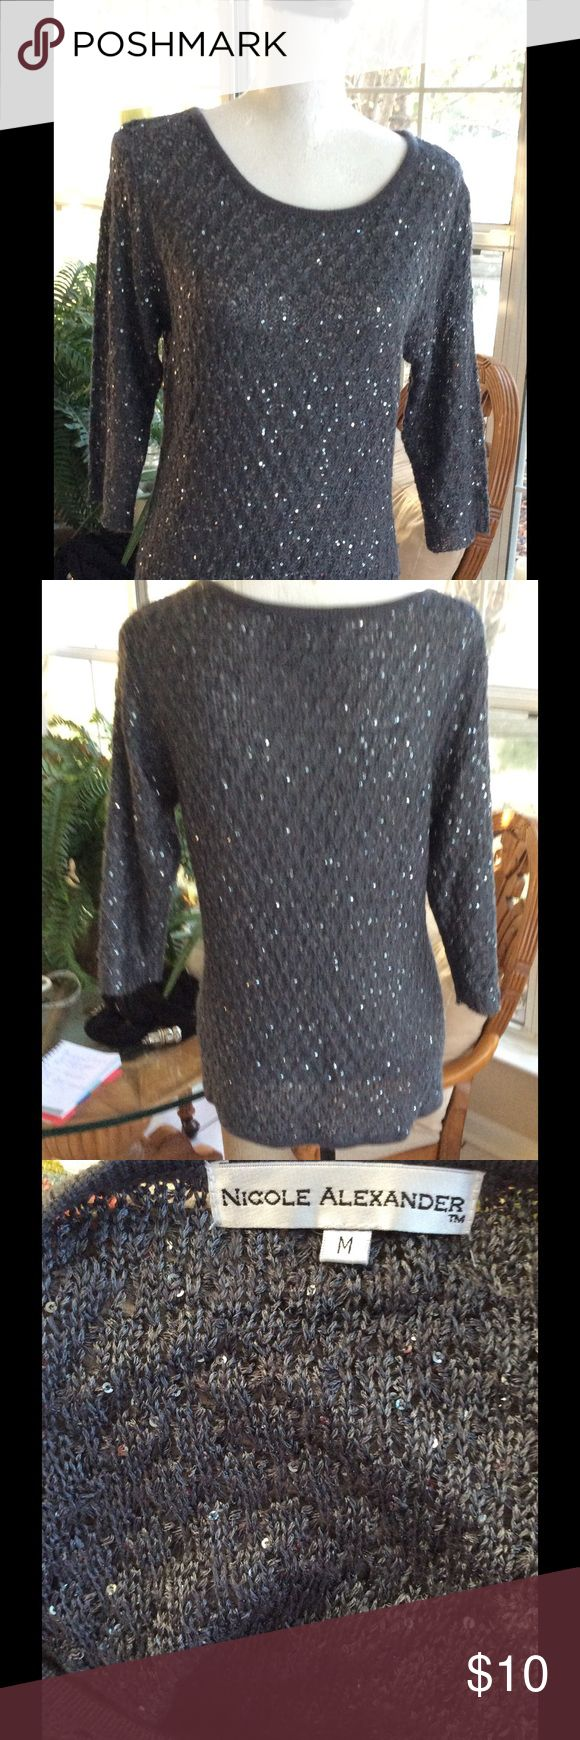 Sequin Sweater Sparkly sequin sweater.  Like new just in time for the holidays.  Worn once and in like new condition. Nicole Alexander Sweaters